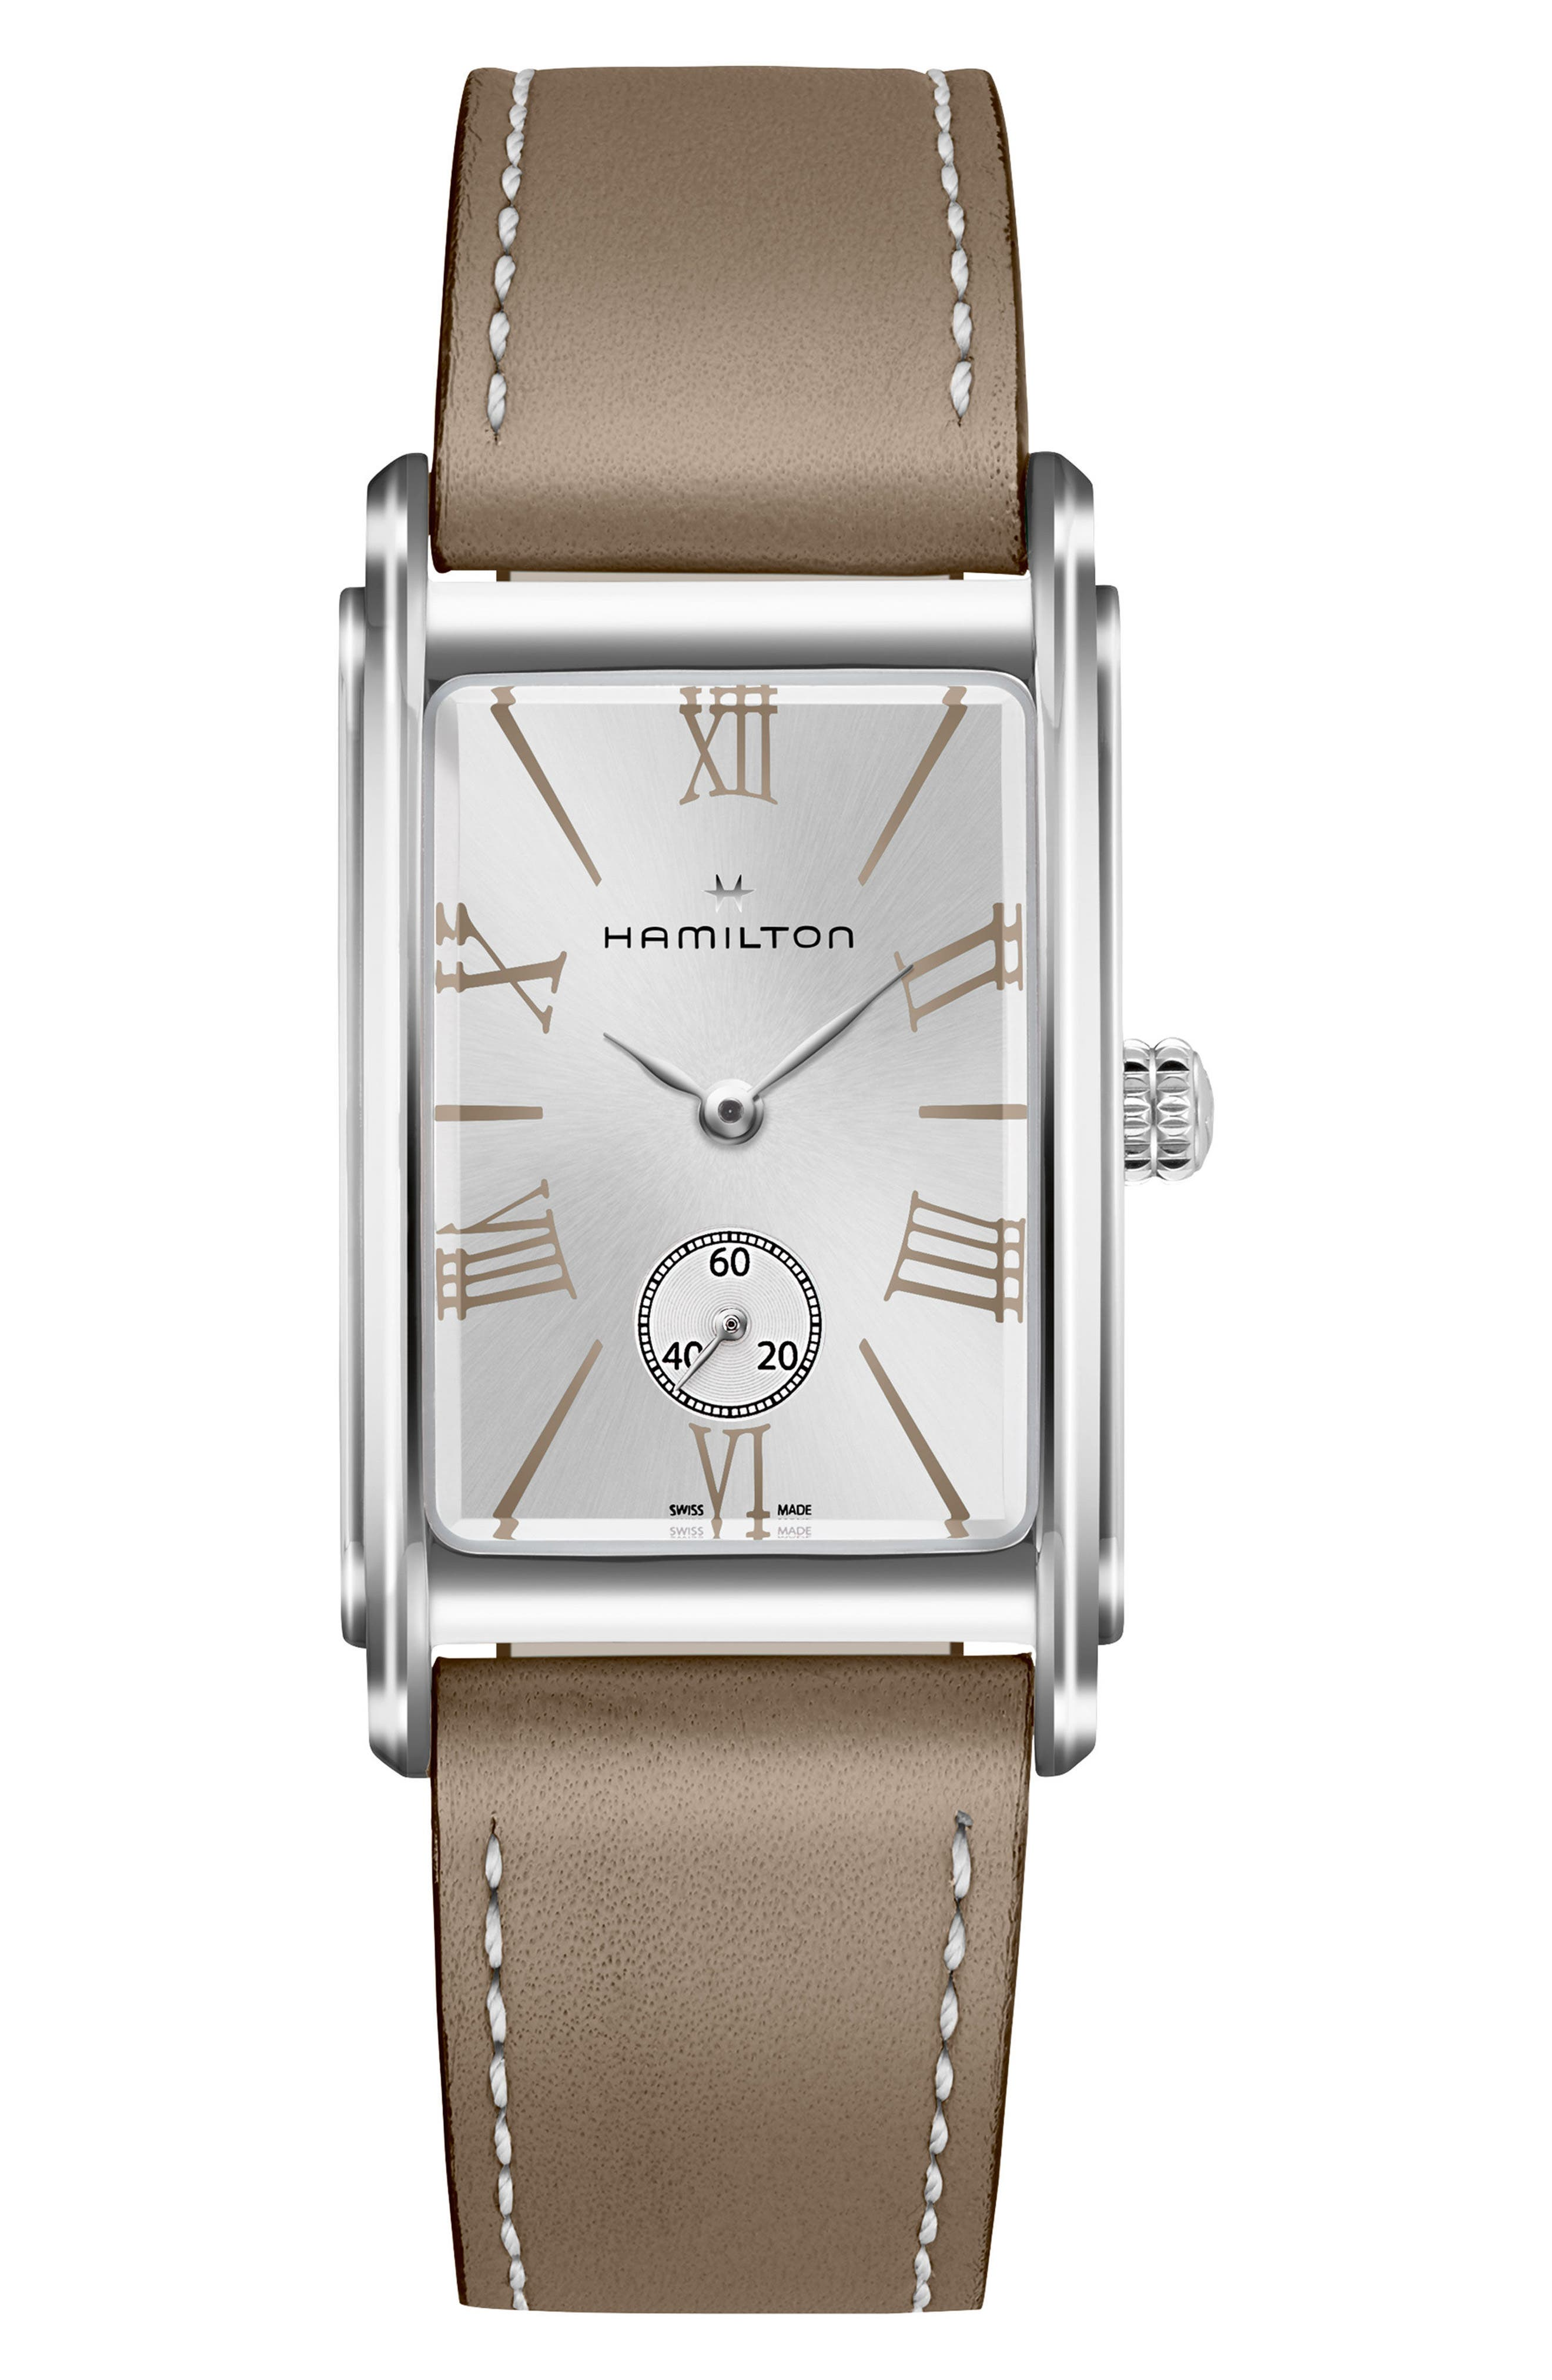 HAMILTON ARDMORE LEATHER STRAP WATCH, 23MM X 32MM